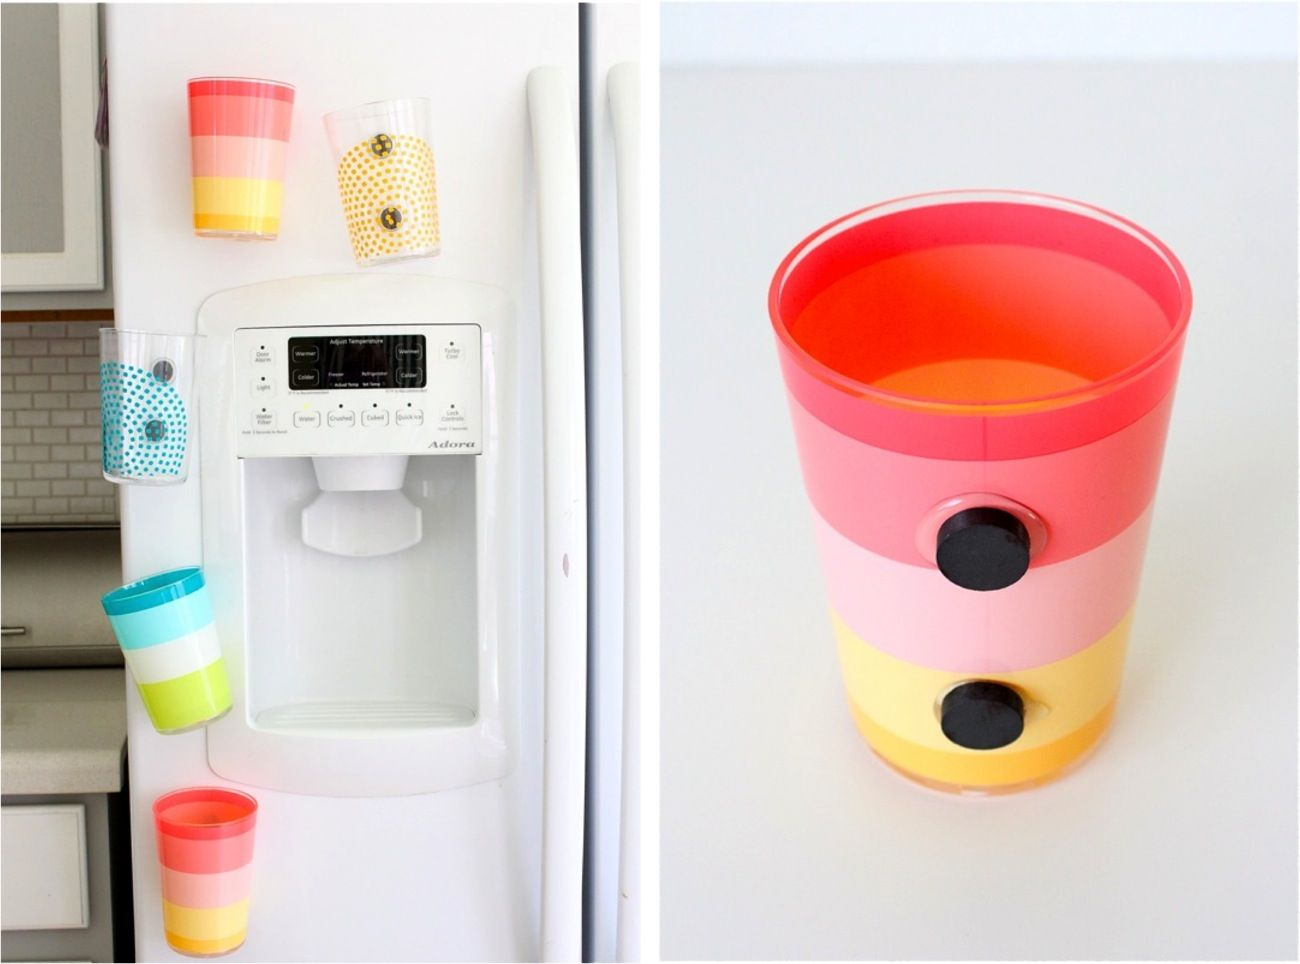 This mama was tired of her girls asking for a drink of water every two seconds and pulling new cups out of the cupboard. So she thought\u2026why not make cups that stick on the fridge with magnets?  They can grab a cup